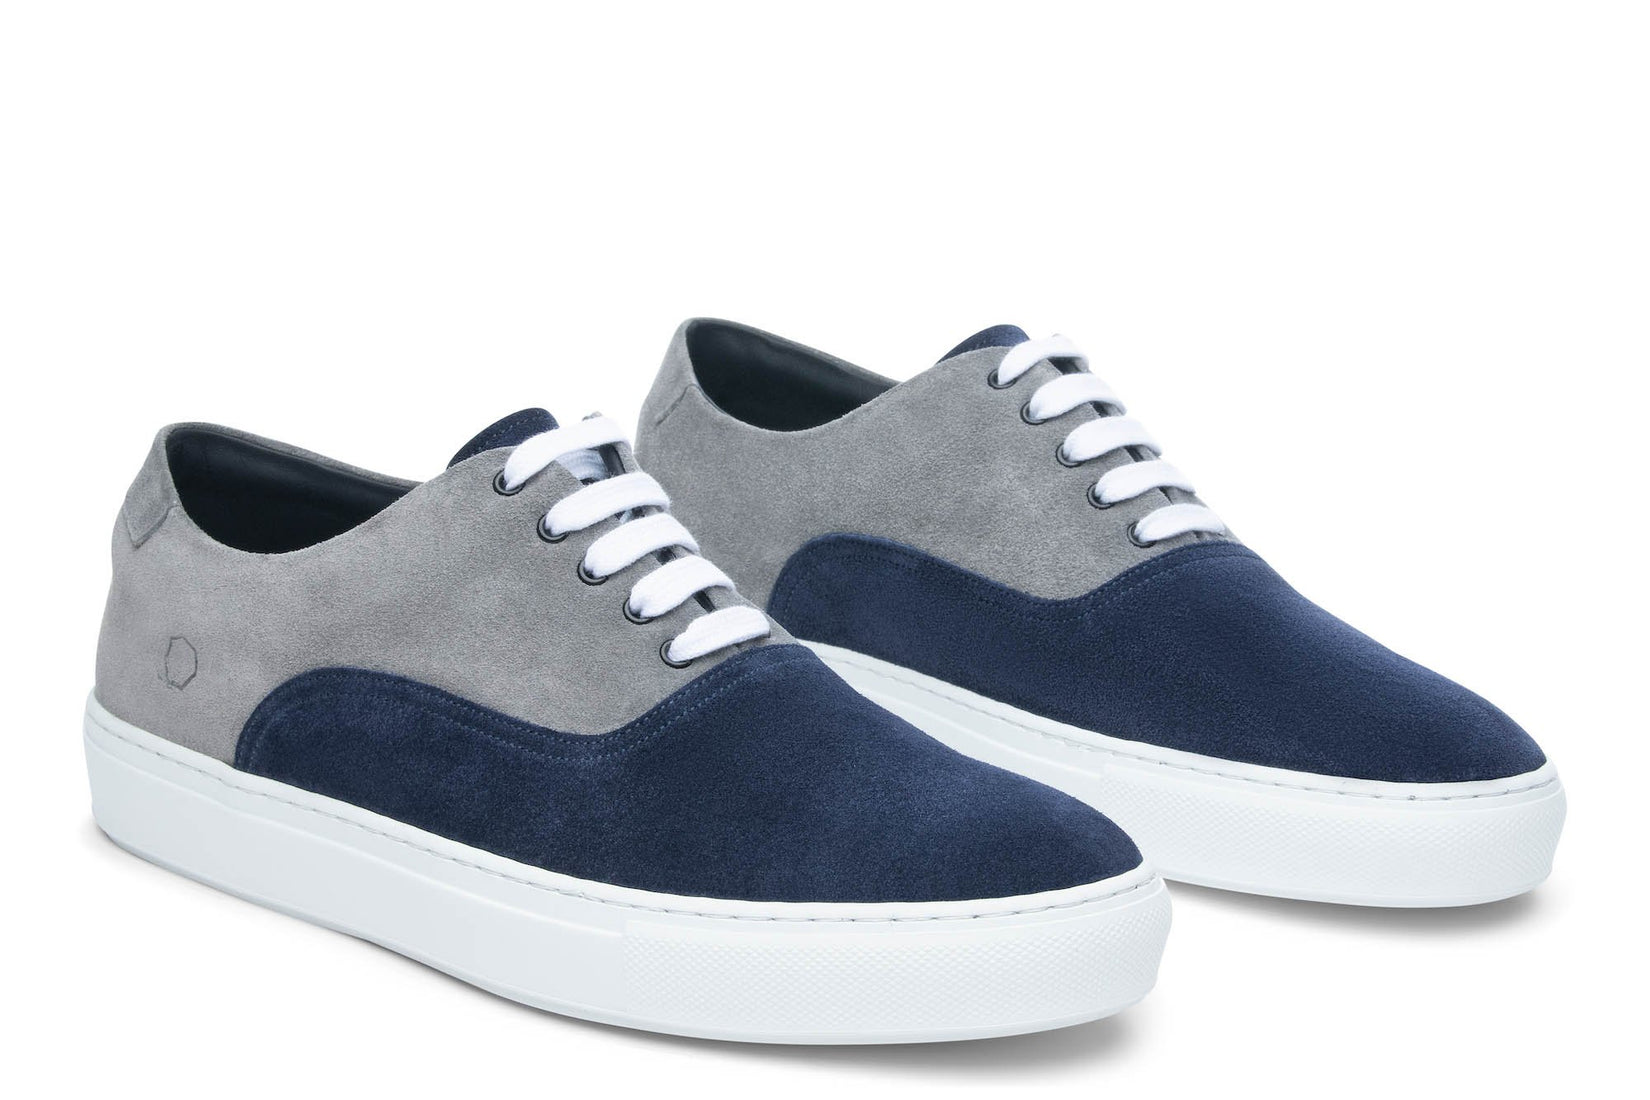 Sunday Two-Tone Skater Sneaker in Navy/Grey